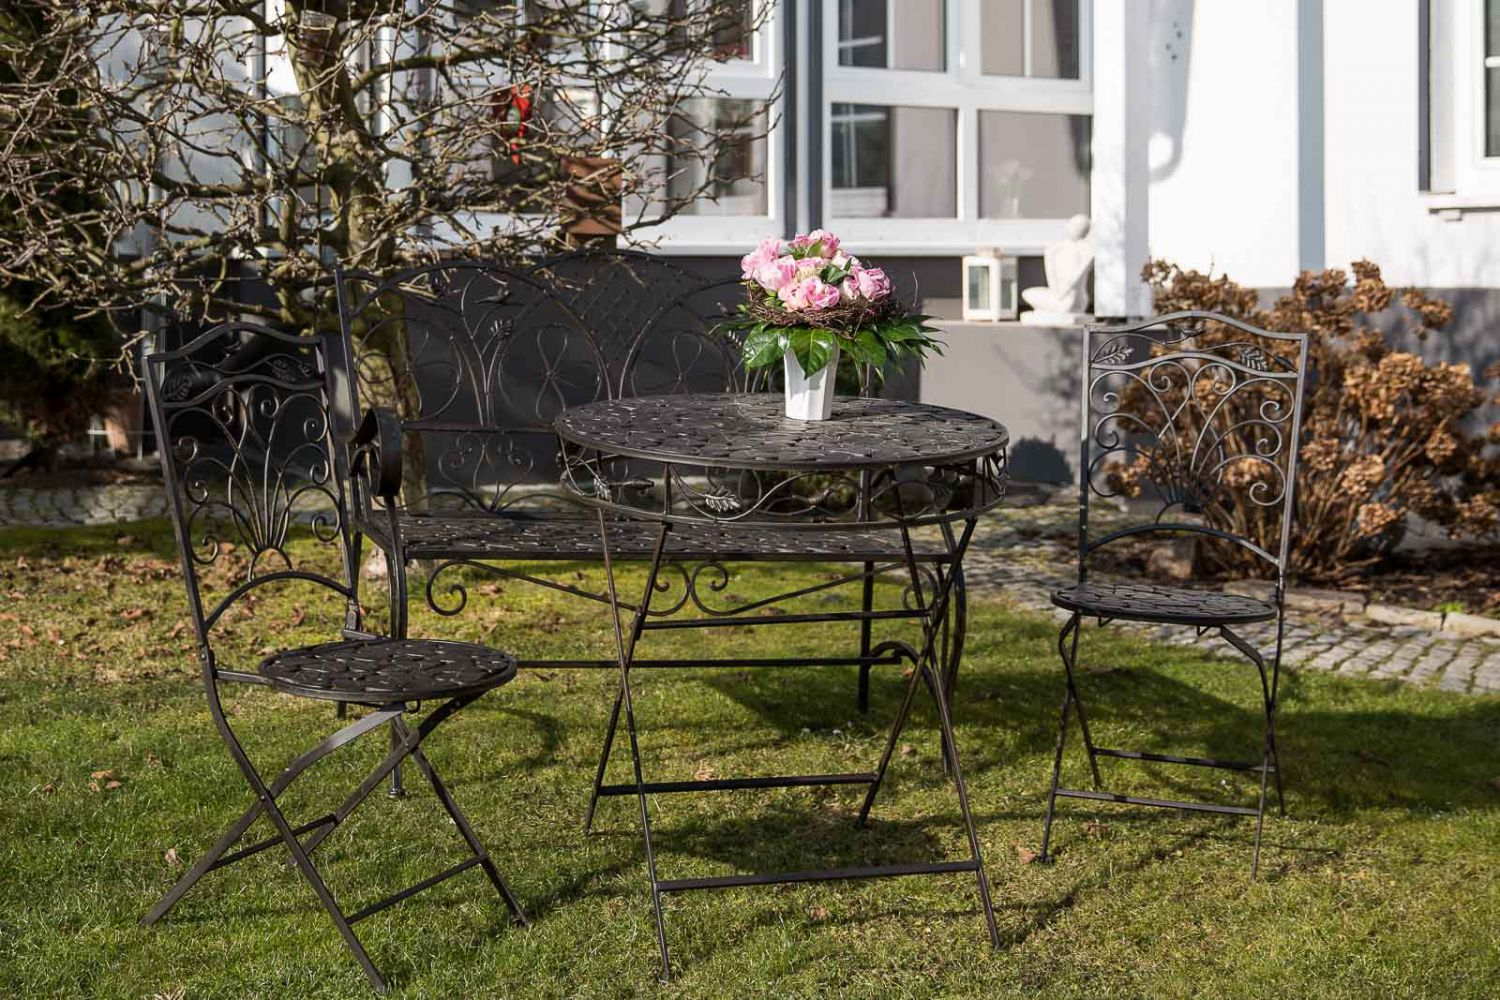 garnitur gartenset eisen antik stil braun gartenm bel gartentisch gartenbank ebay. Black Bedroom Furniture Sets. Home Design Ideas